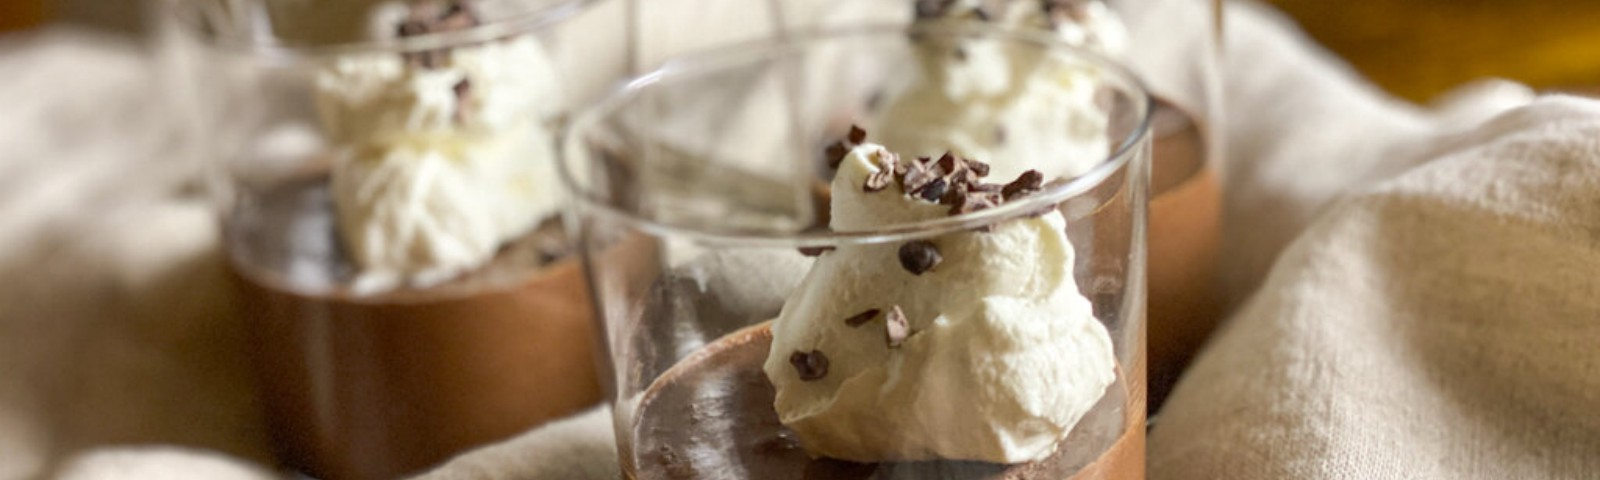 Three servings of chocolate mousse, served in glass tumblers, topped with whipped cream and cacao nibs